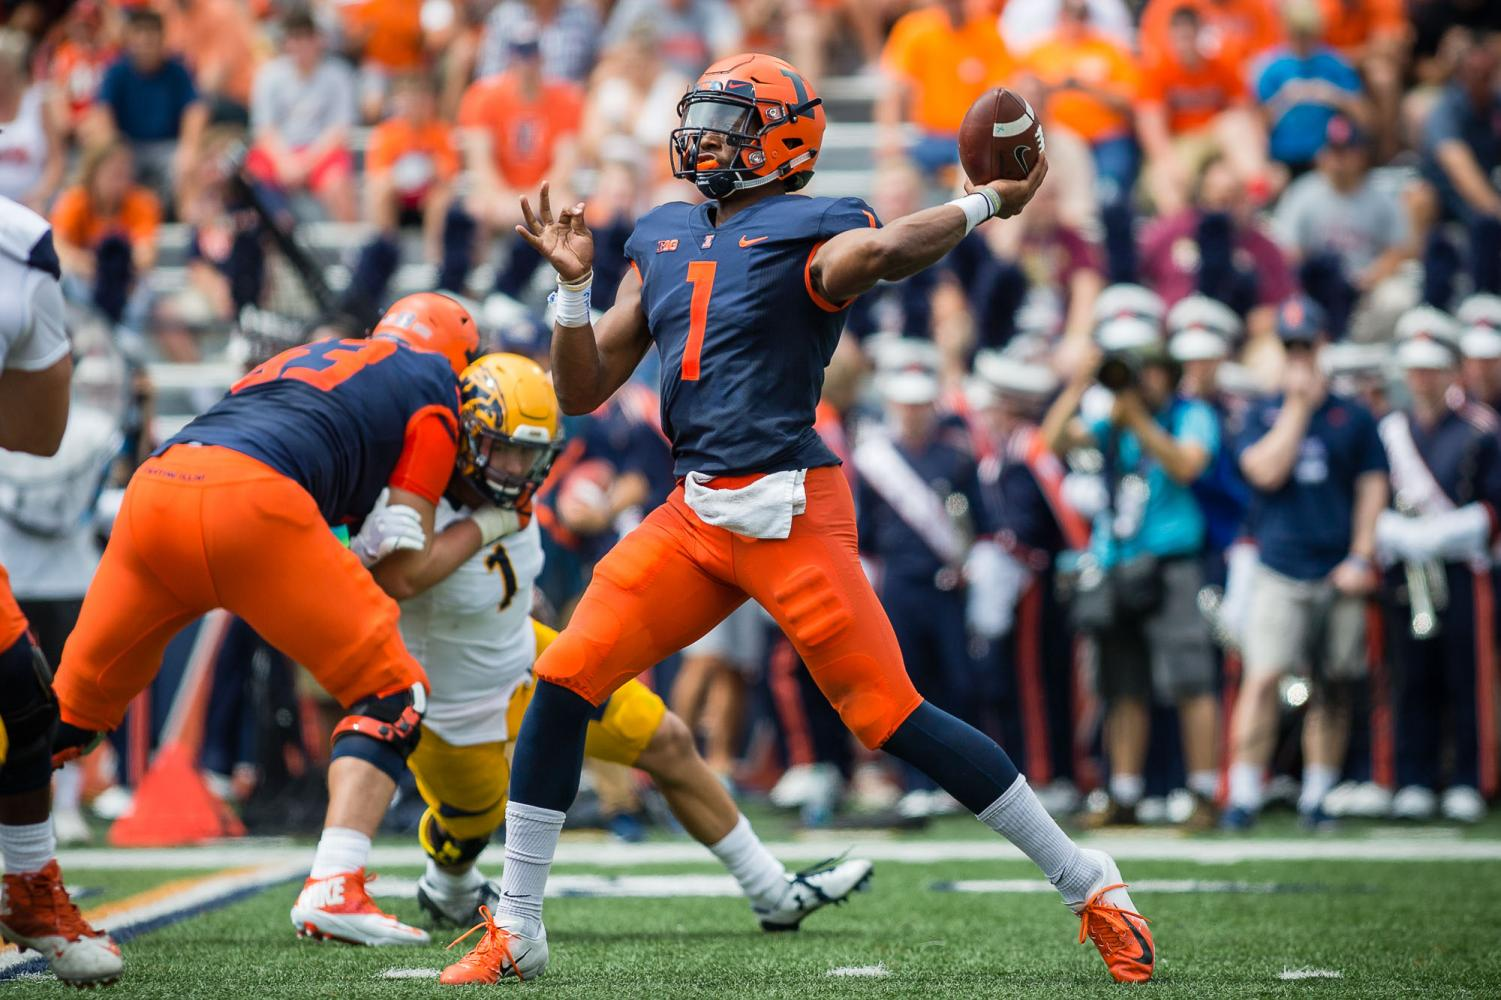 Illinois quarterback AJ Bush (1) throws a pass during the game against Kent State at Memorial Stadium on Saturday, Sept. 1, 2018.